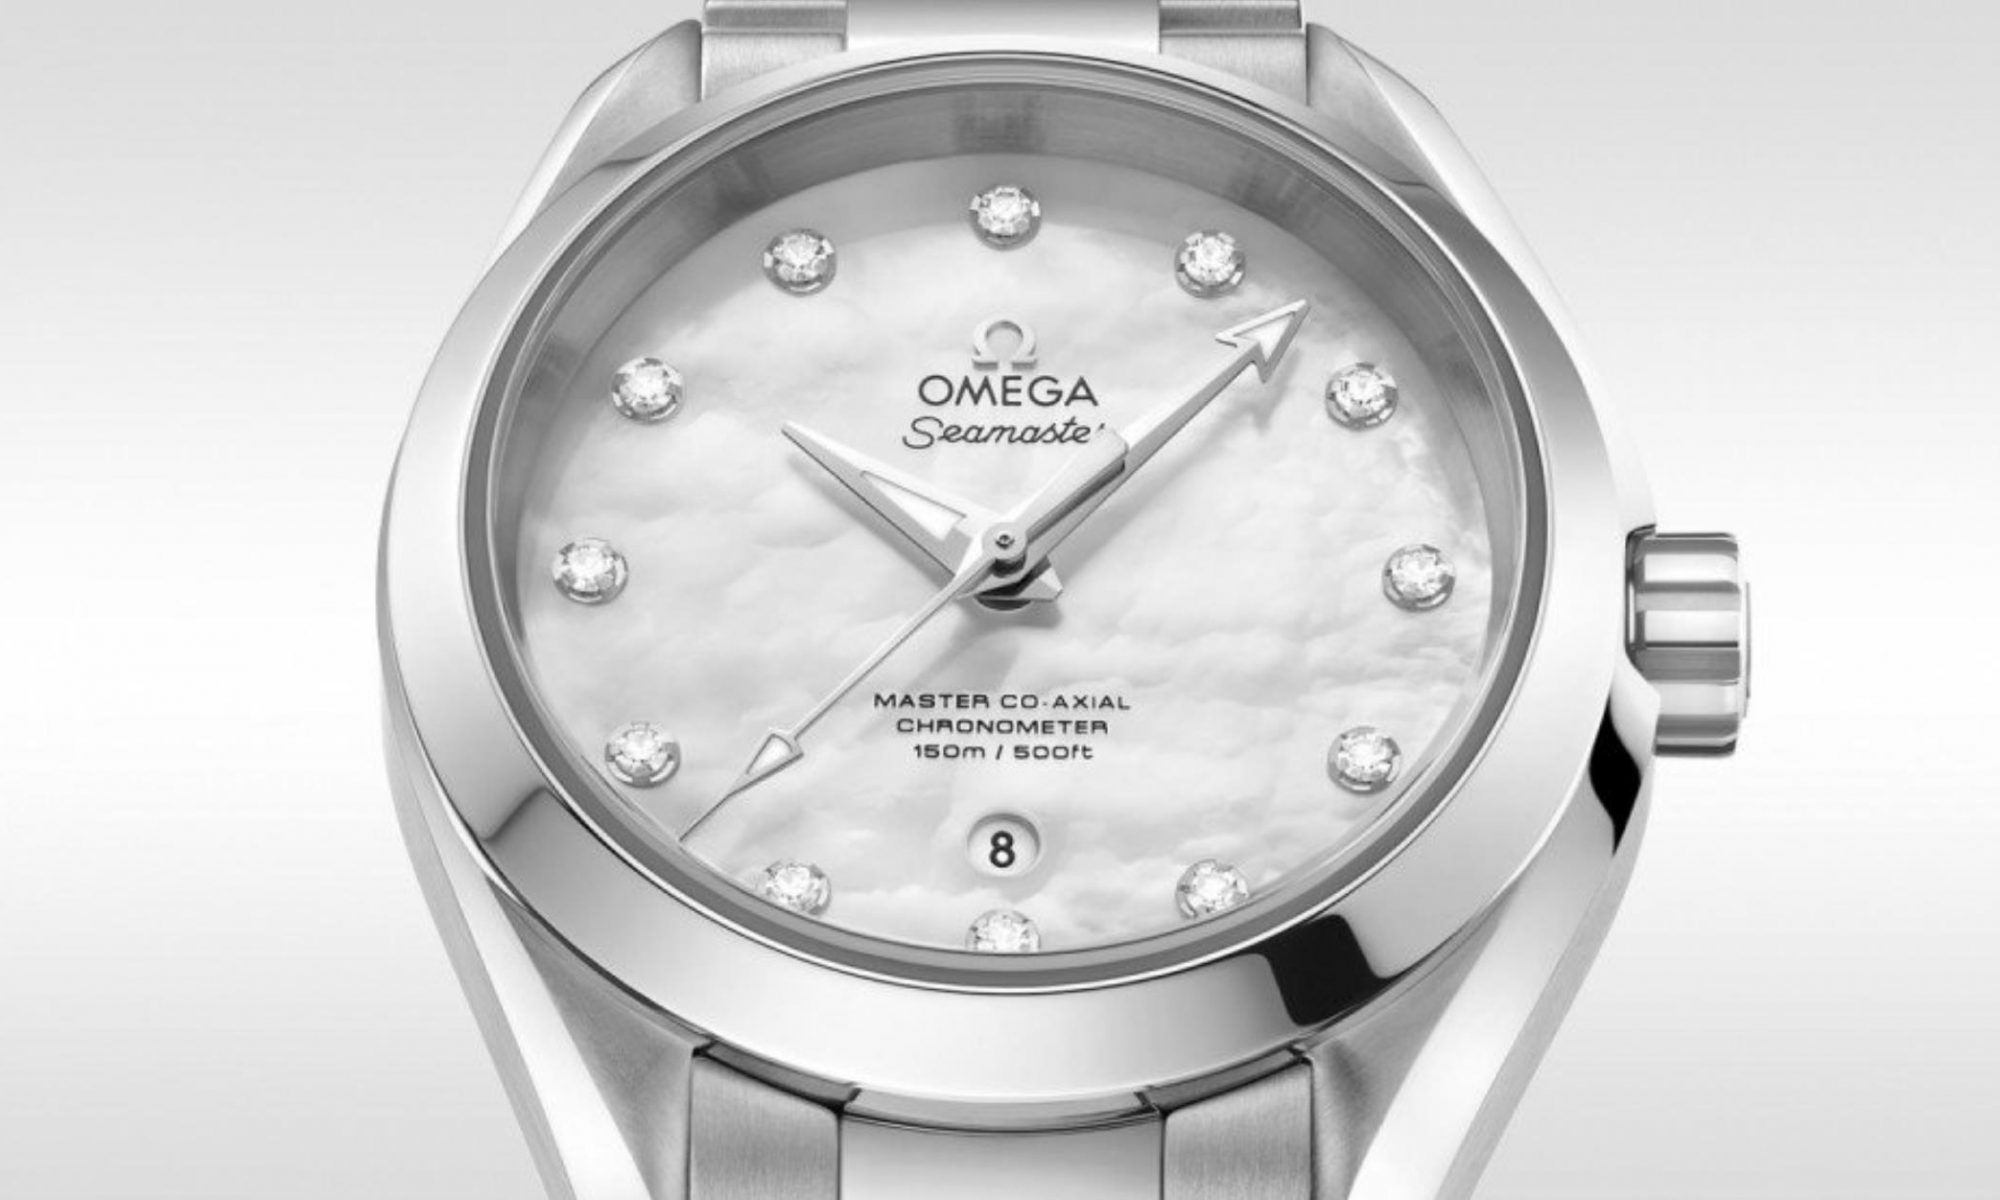 The stainless steel fake watch has a white dial.